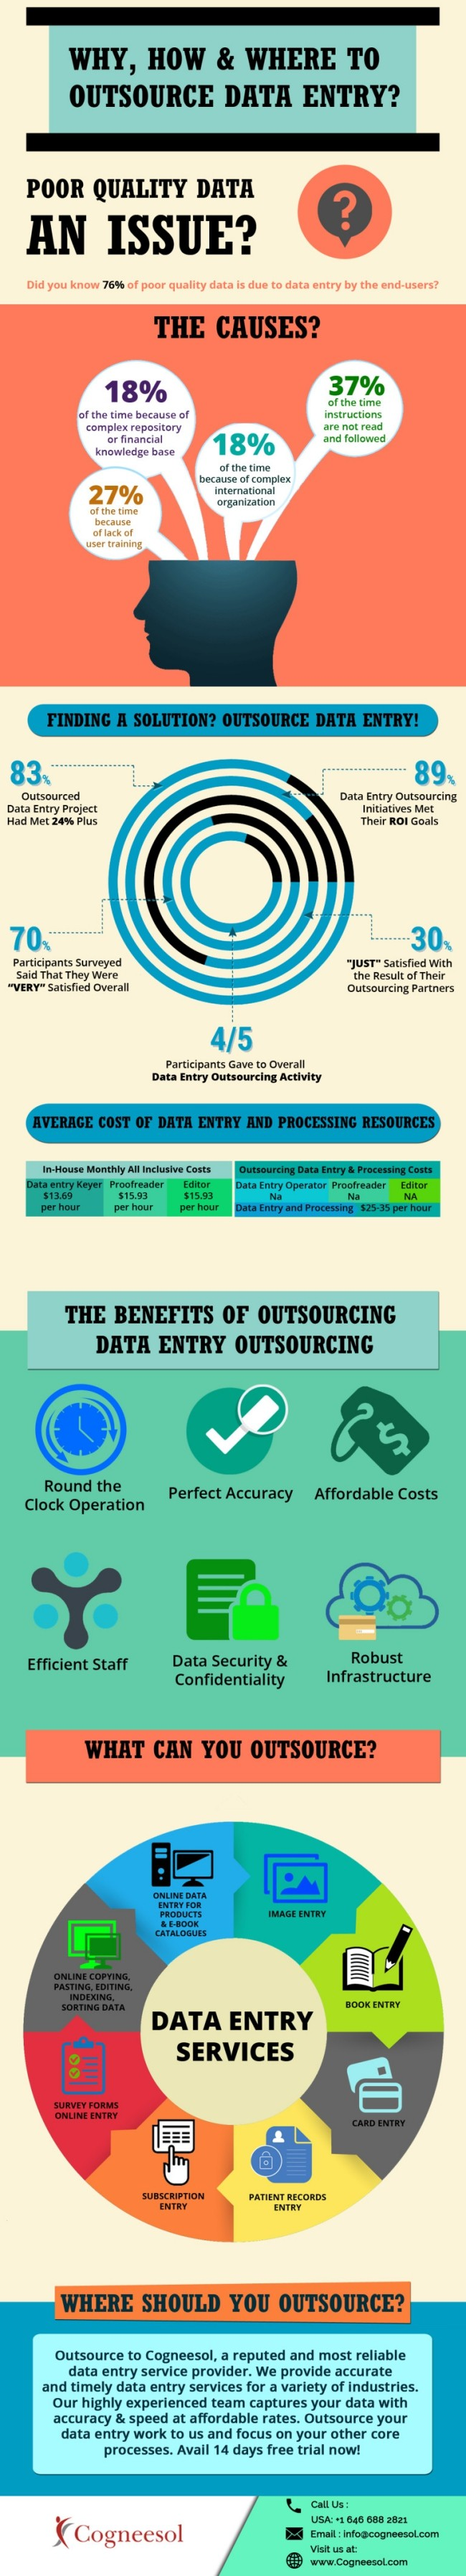 Why, How & Where to Outsource Data Entry Infographic